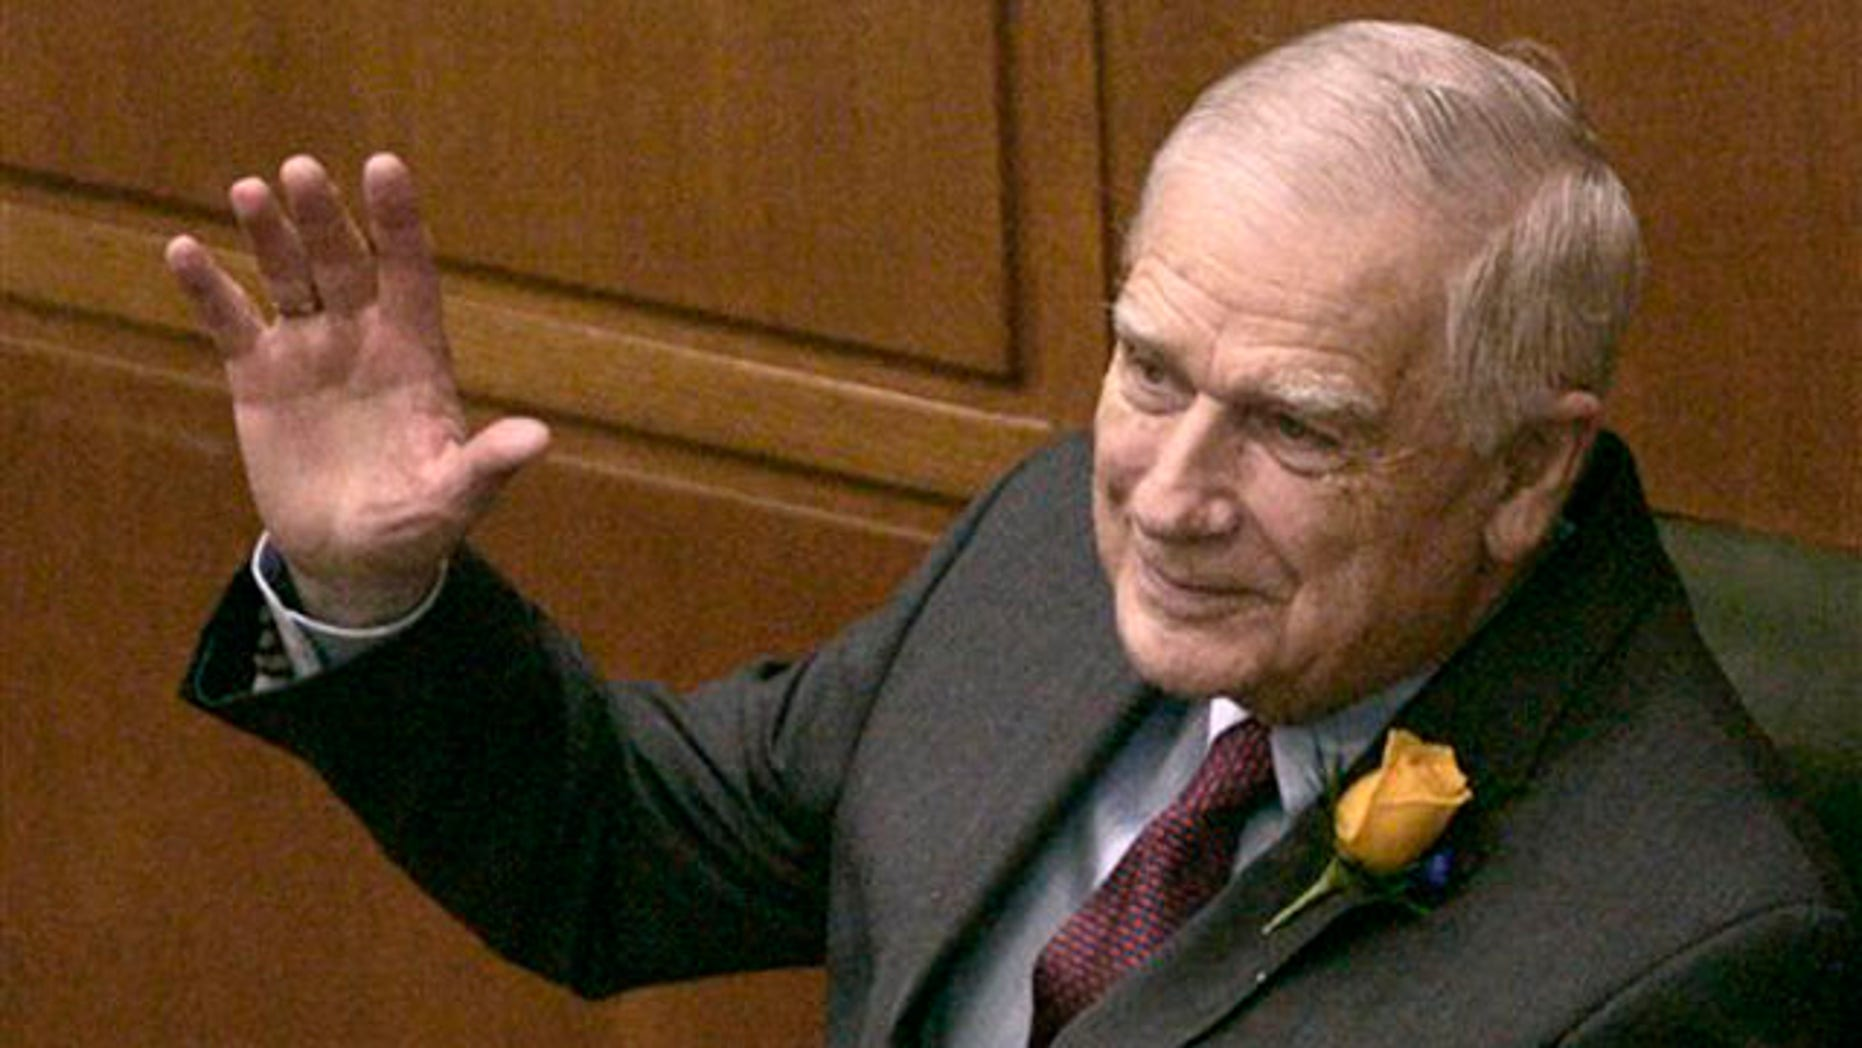 In this Jan. 8, 2007 file photo, former Oregon Sen. Mark Hatfield waves to members of the state House as the 2007 Oregon legislative session opens at the Capitol in Salem, Ore.